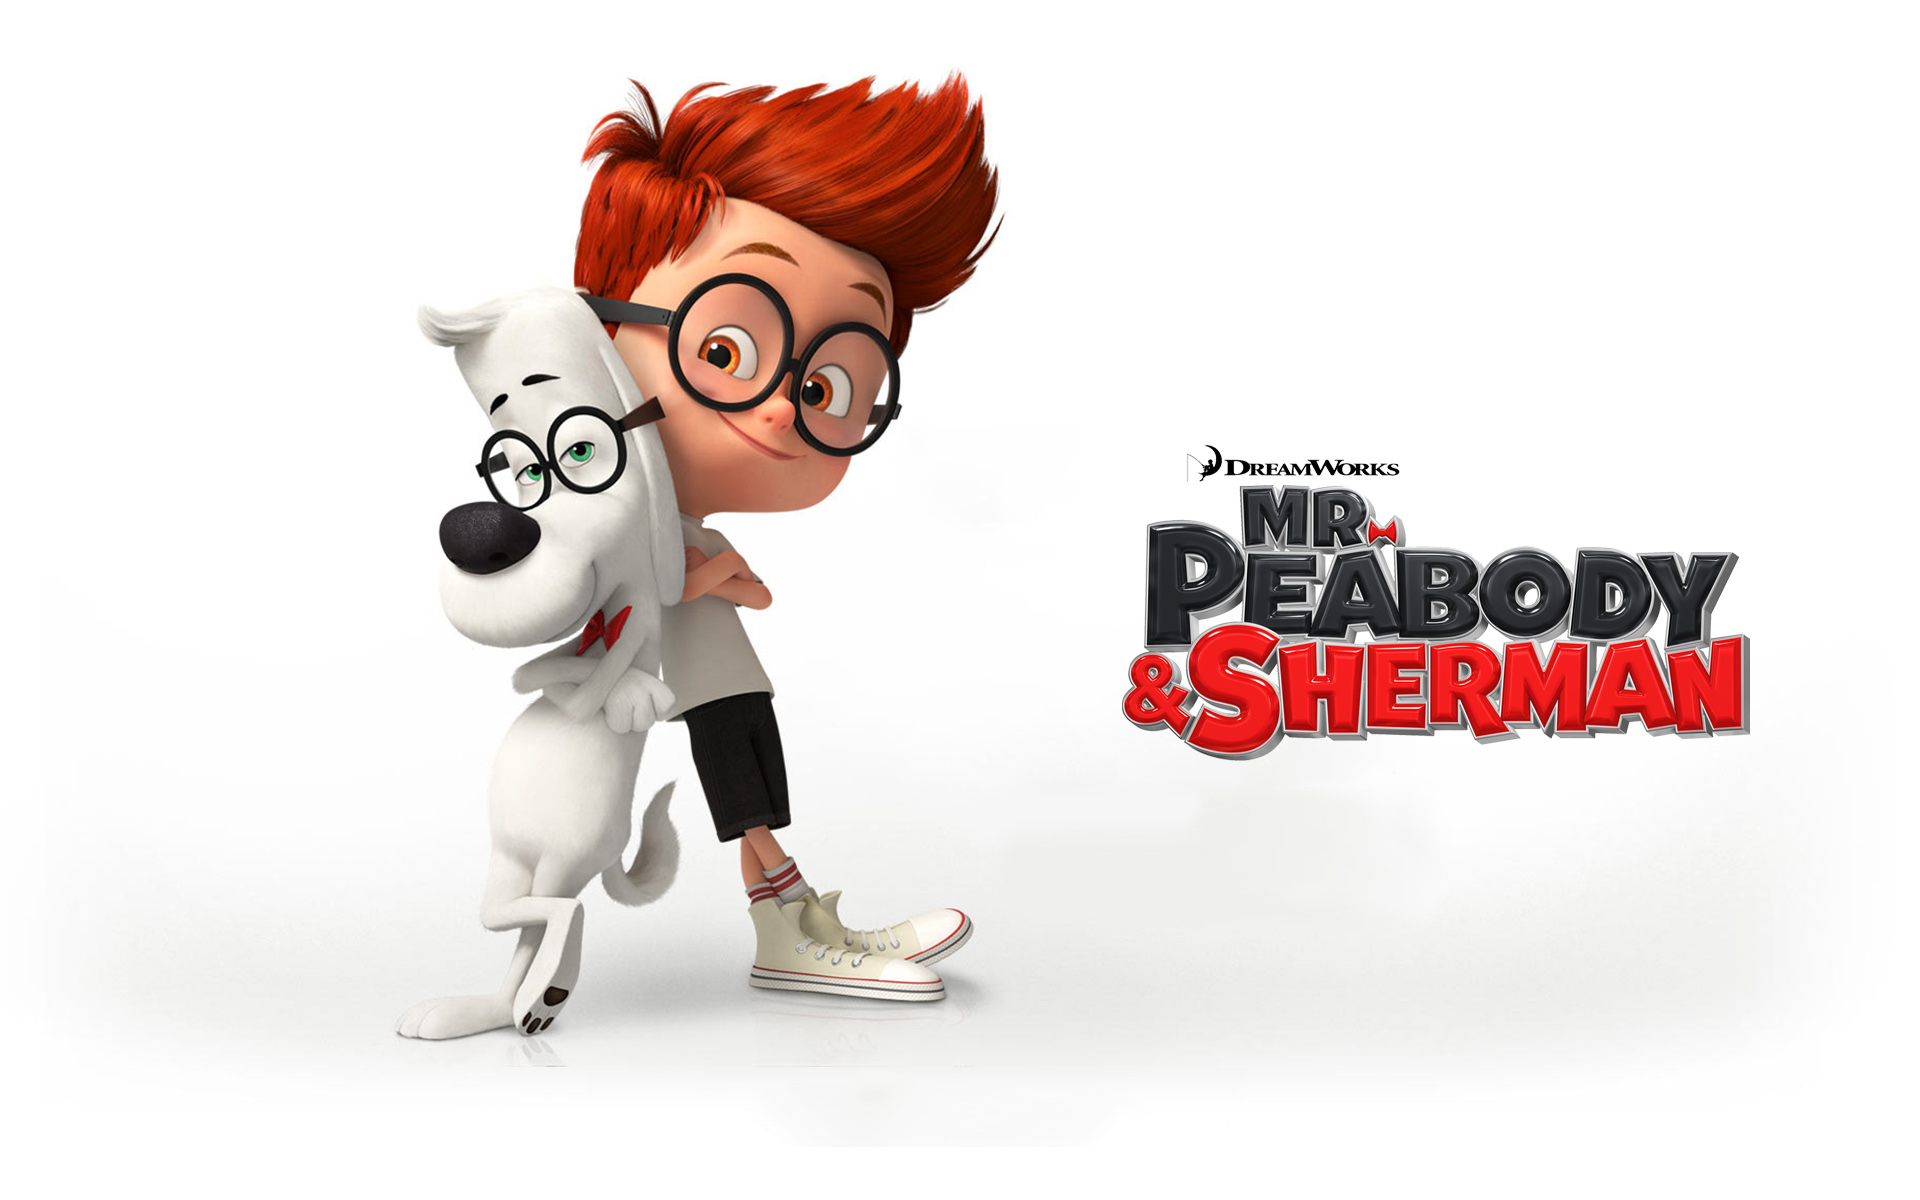 Mr.-Peabody-and-Sherman.jpg